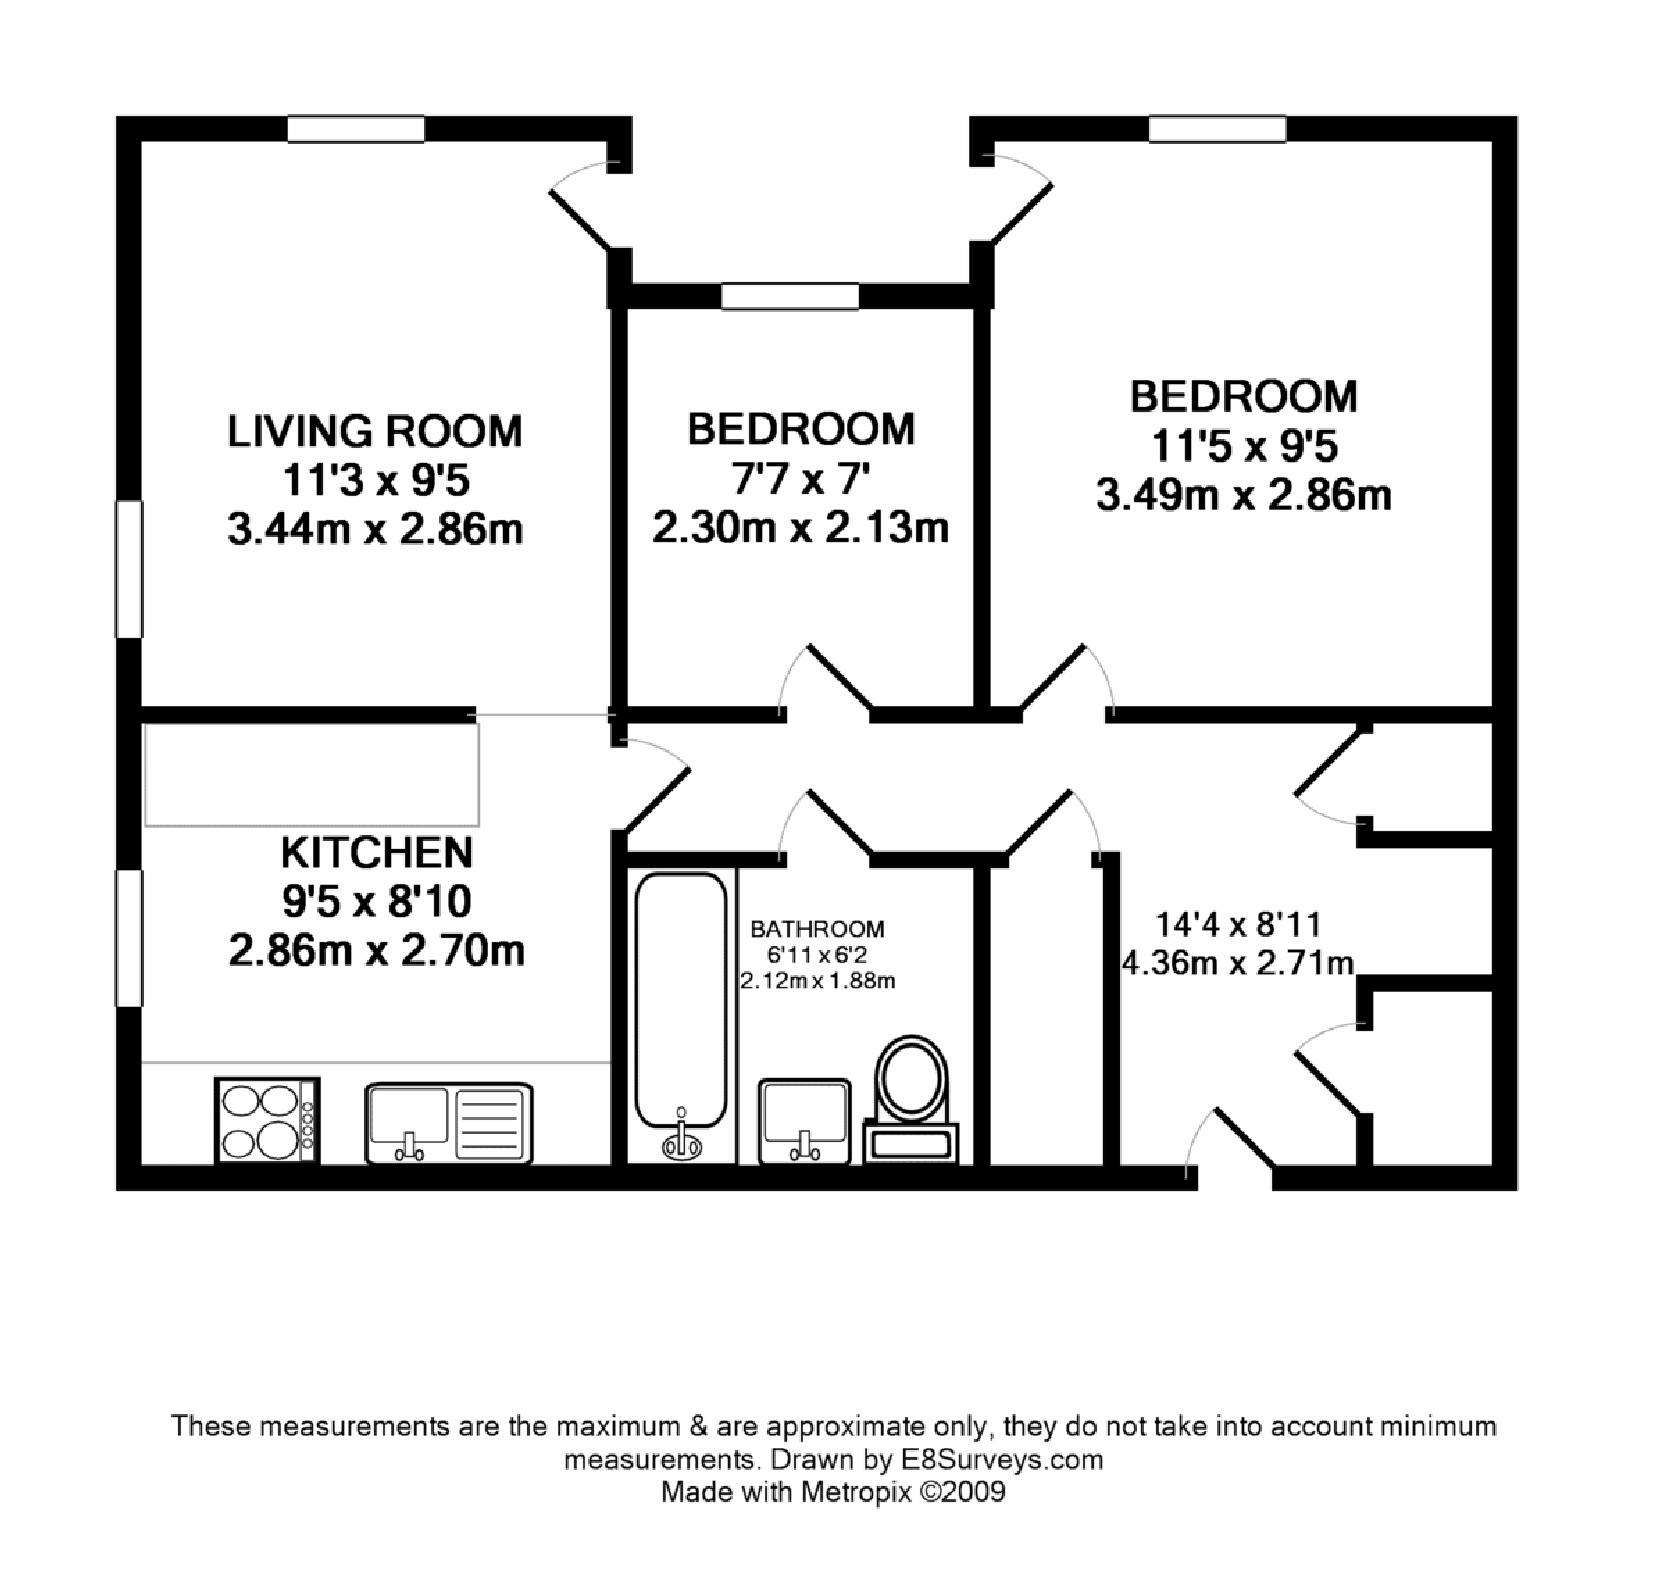 Ground Floor Unfurnished 2 Bedroom Apartment OX14 Ref